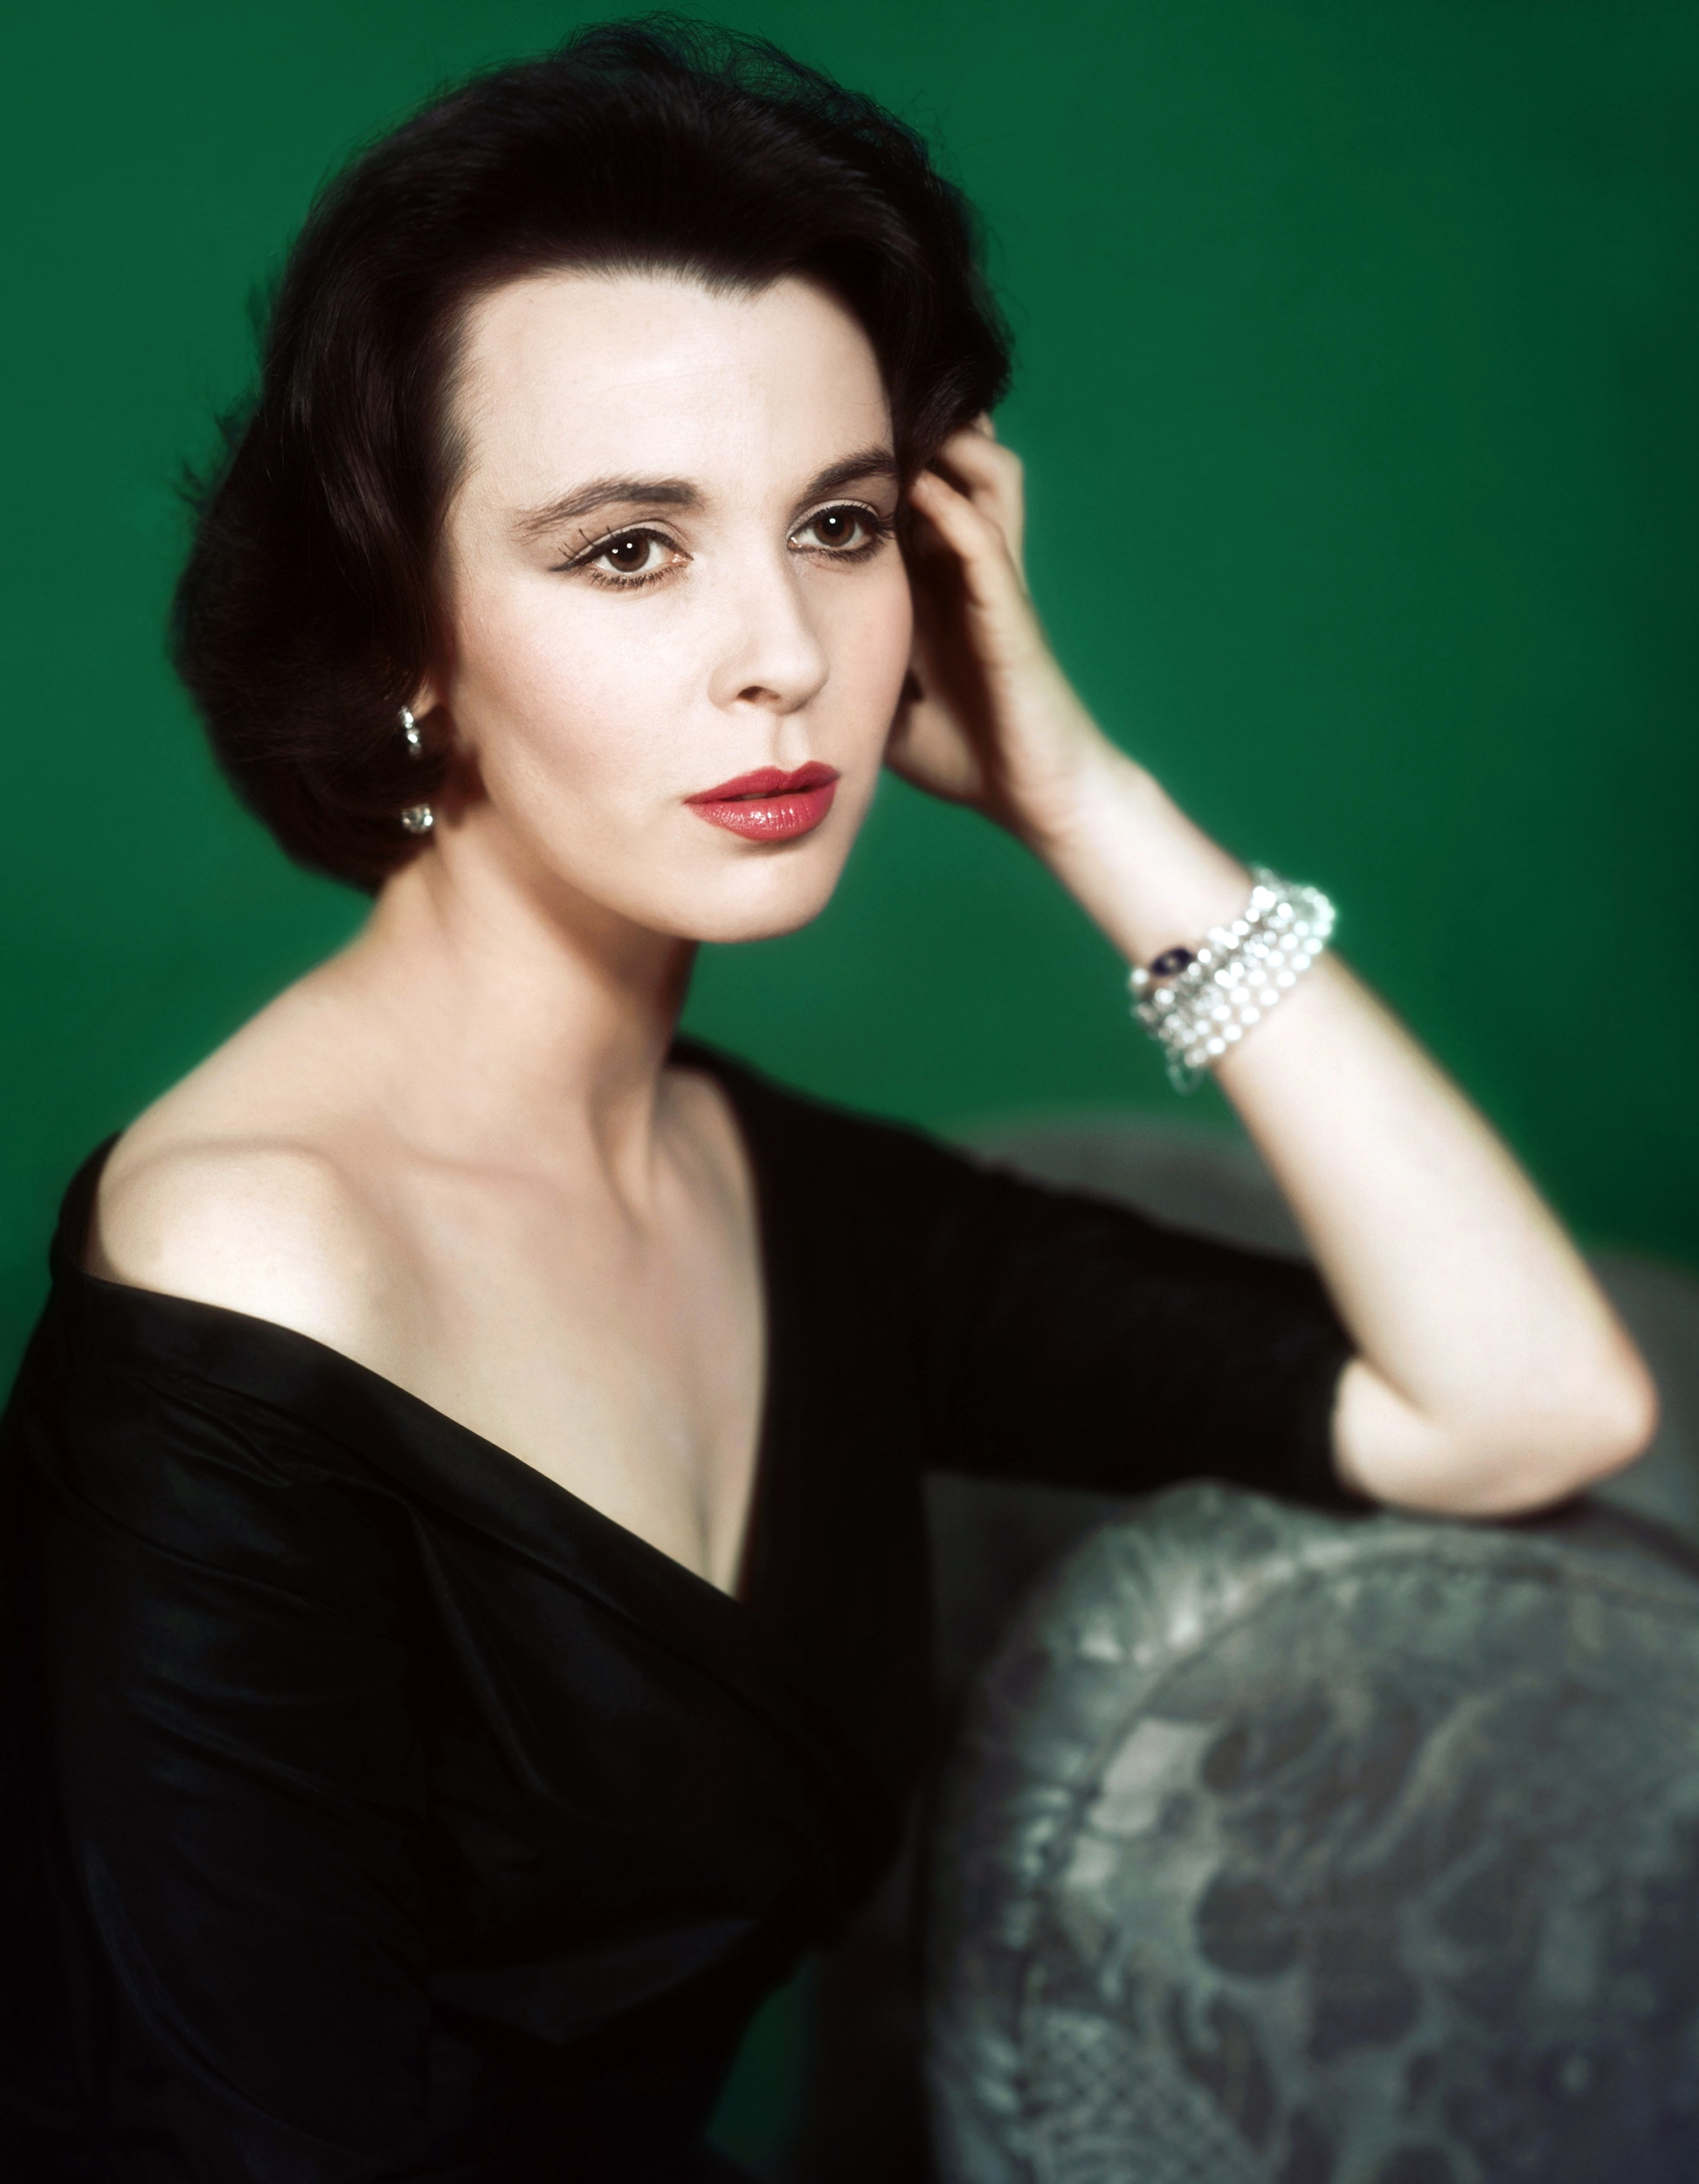 claire bloom feet